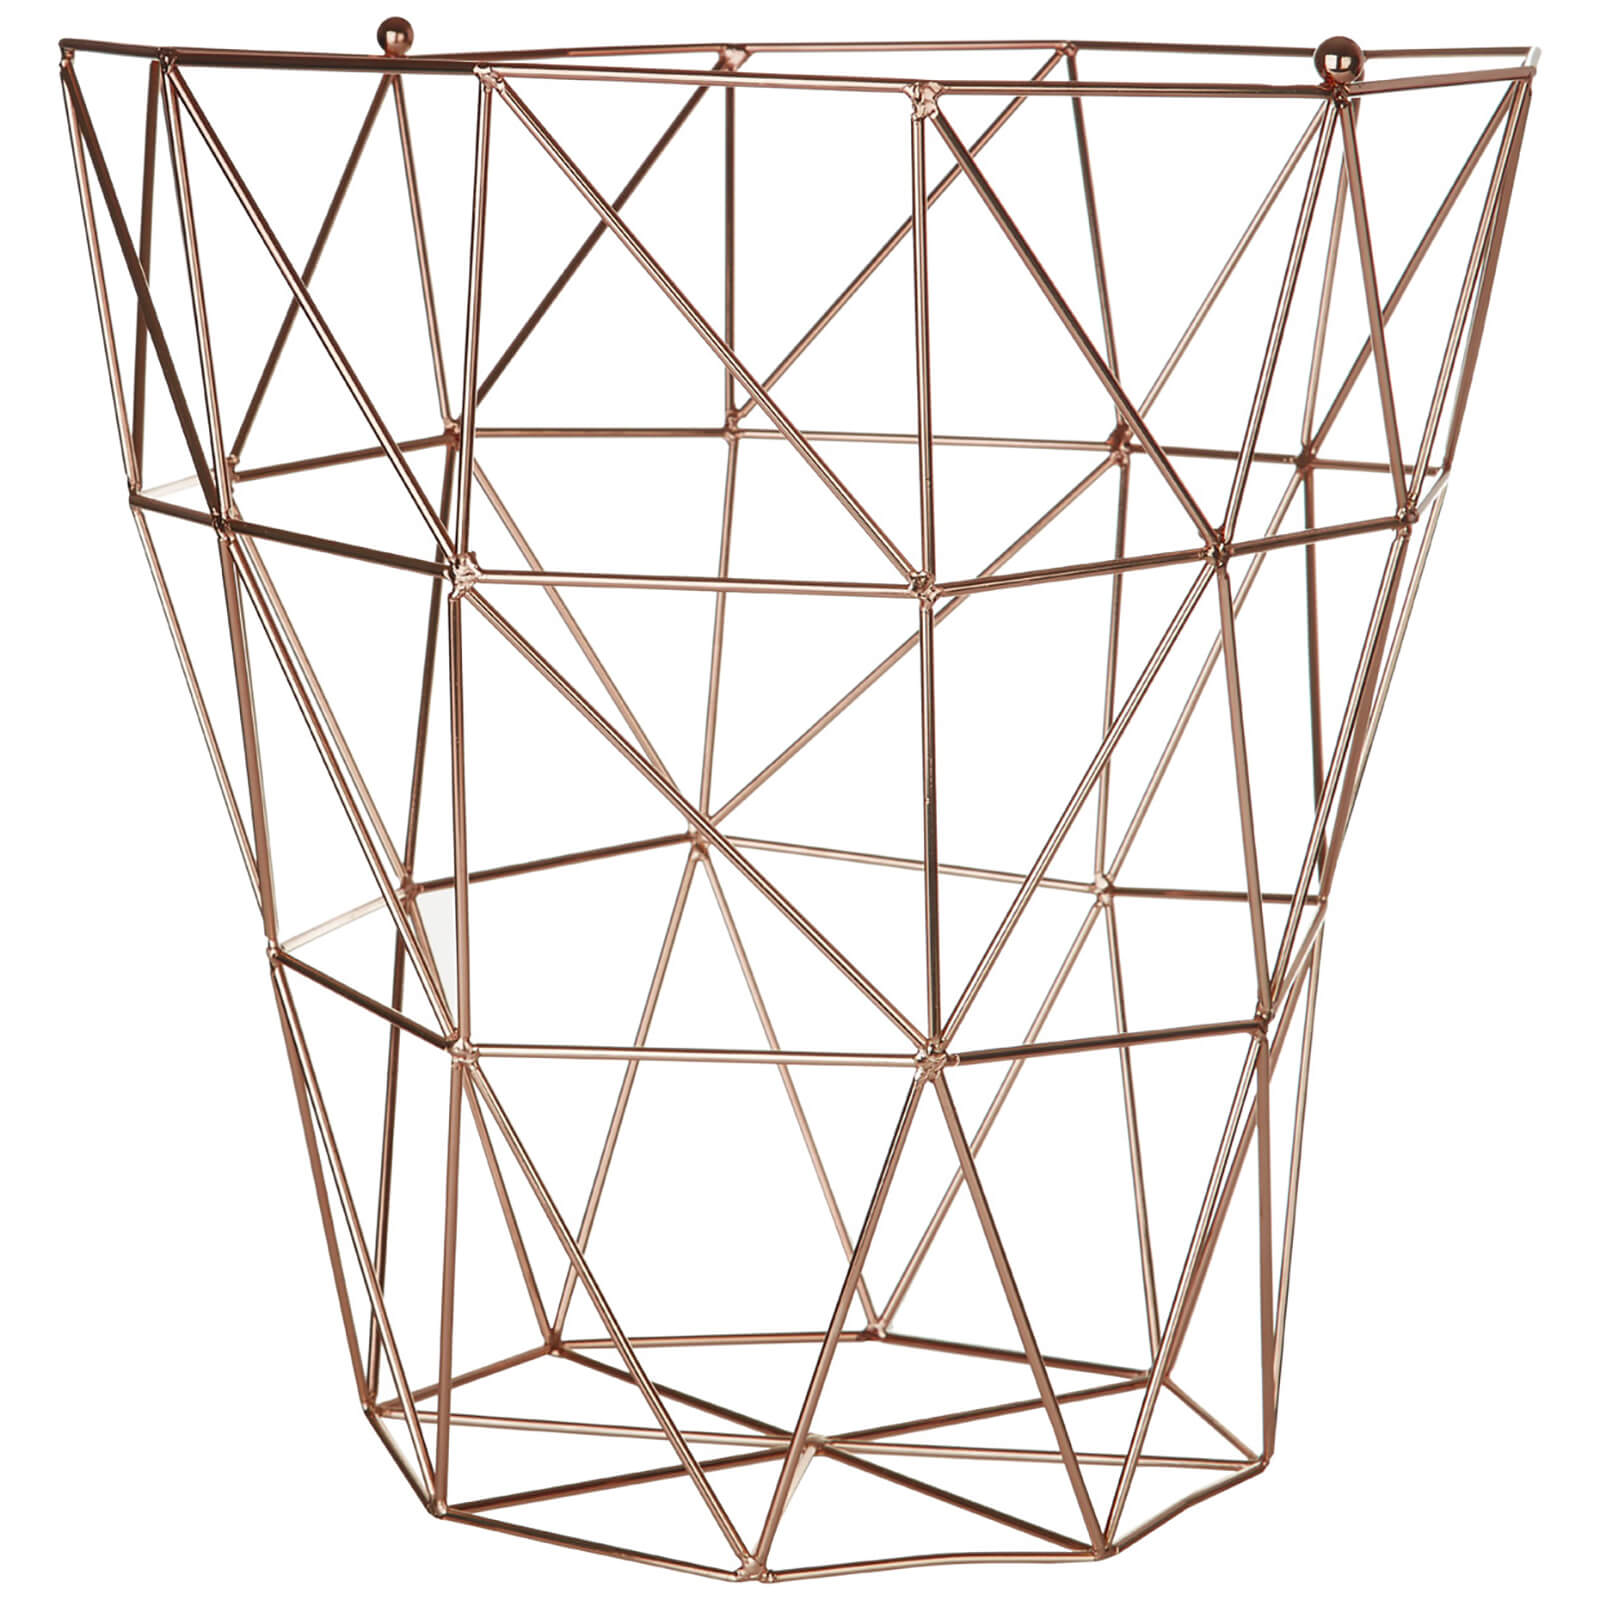 Fifty Five South Vertex Iron Wire Storage Basket - Copper Finish